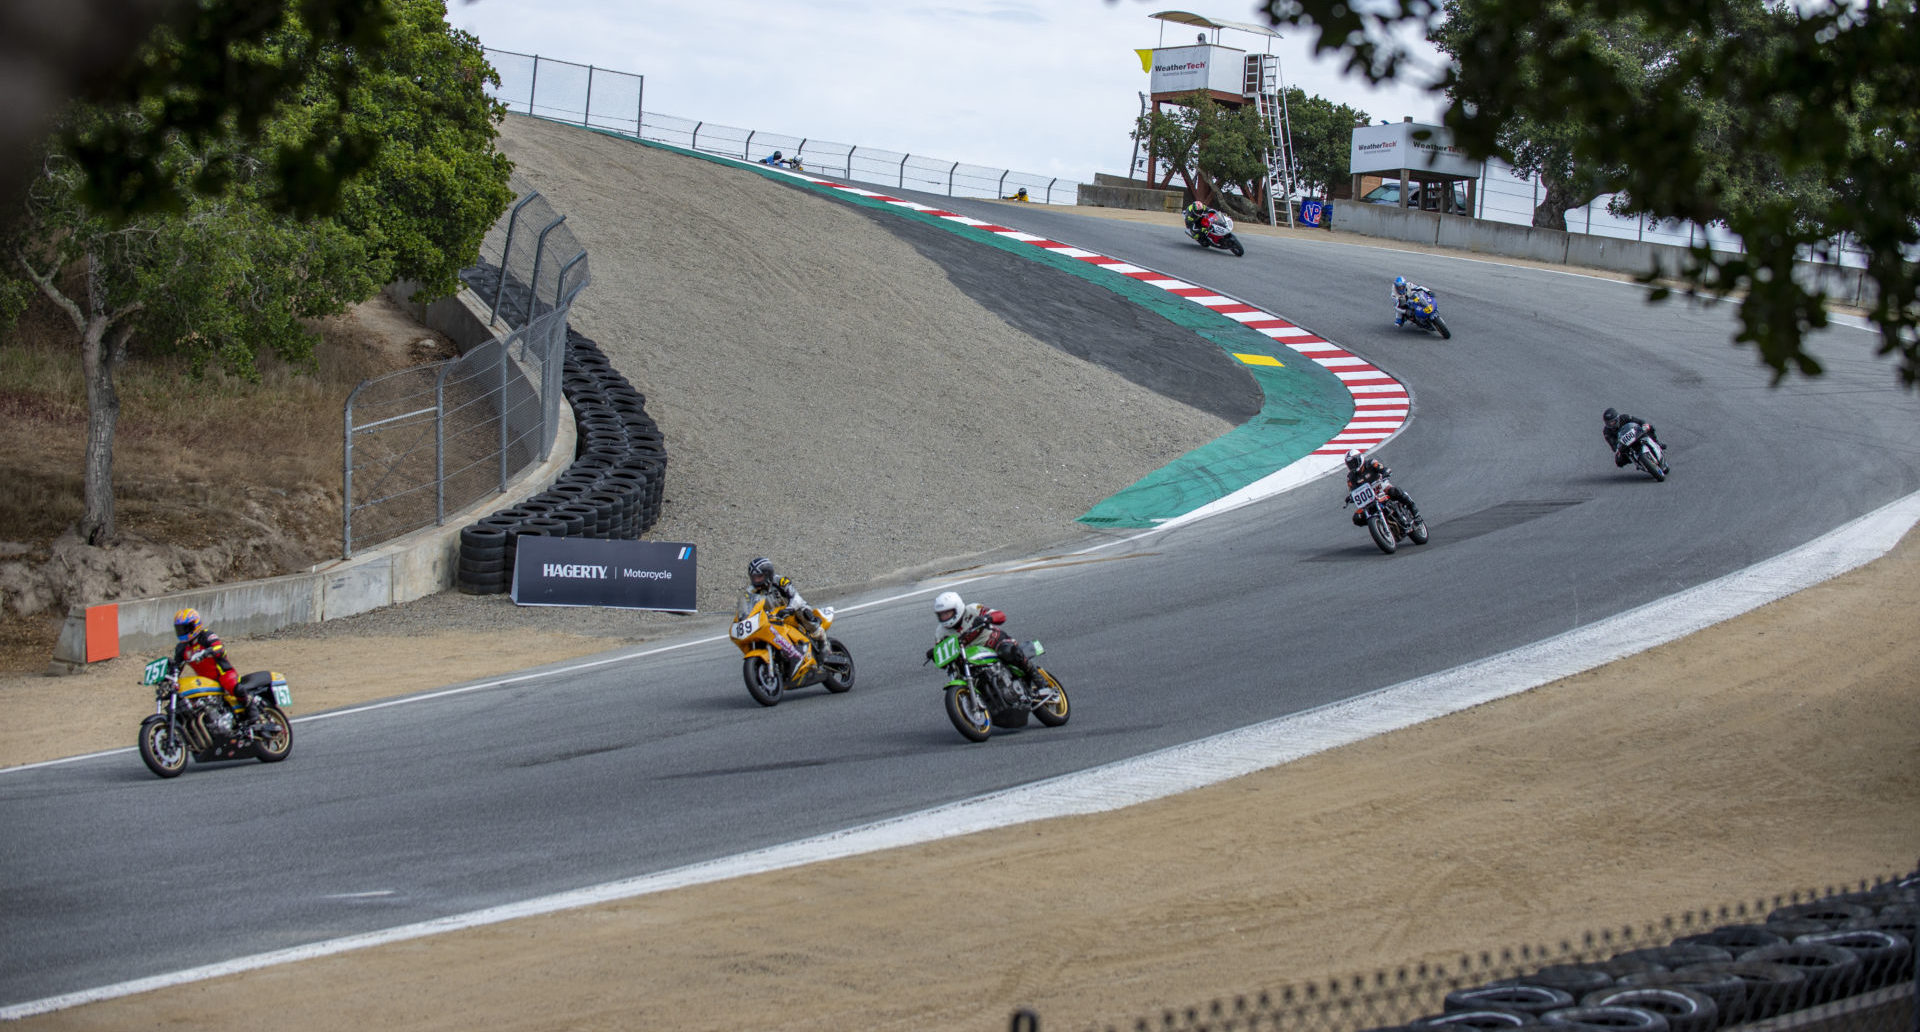 AHRMA racers Michael Butler (757), John Deuser (189), Dave Crussell (119), Mathew Morse (055), Mike Root (R66), Alex Spanos (L29), and Kevin McKee (900) in action at Laguna Seca. Photo by Kevin McIntosh, courtesy AHRMA.